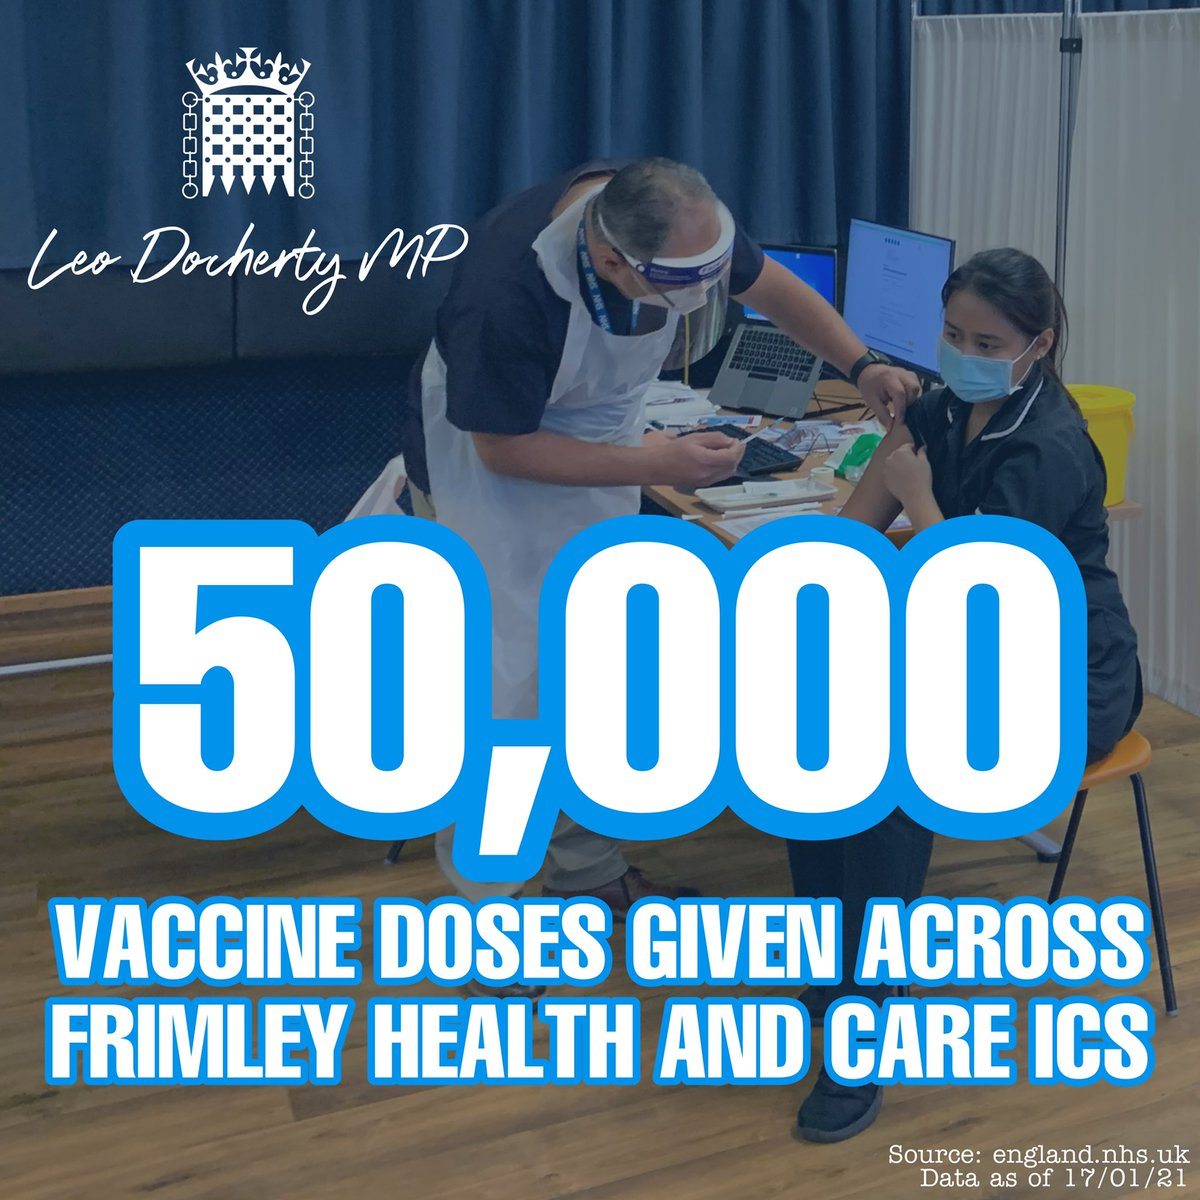 🙌💉 BREAKING: 50,000 vaccine doses administered across @FrimleyHC  This includes over 45,000 local residents in our highest priority groups. An amazing achievement for our NHS and local volunteers.  #ThankYouNHS #StayHome